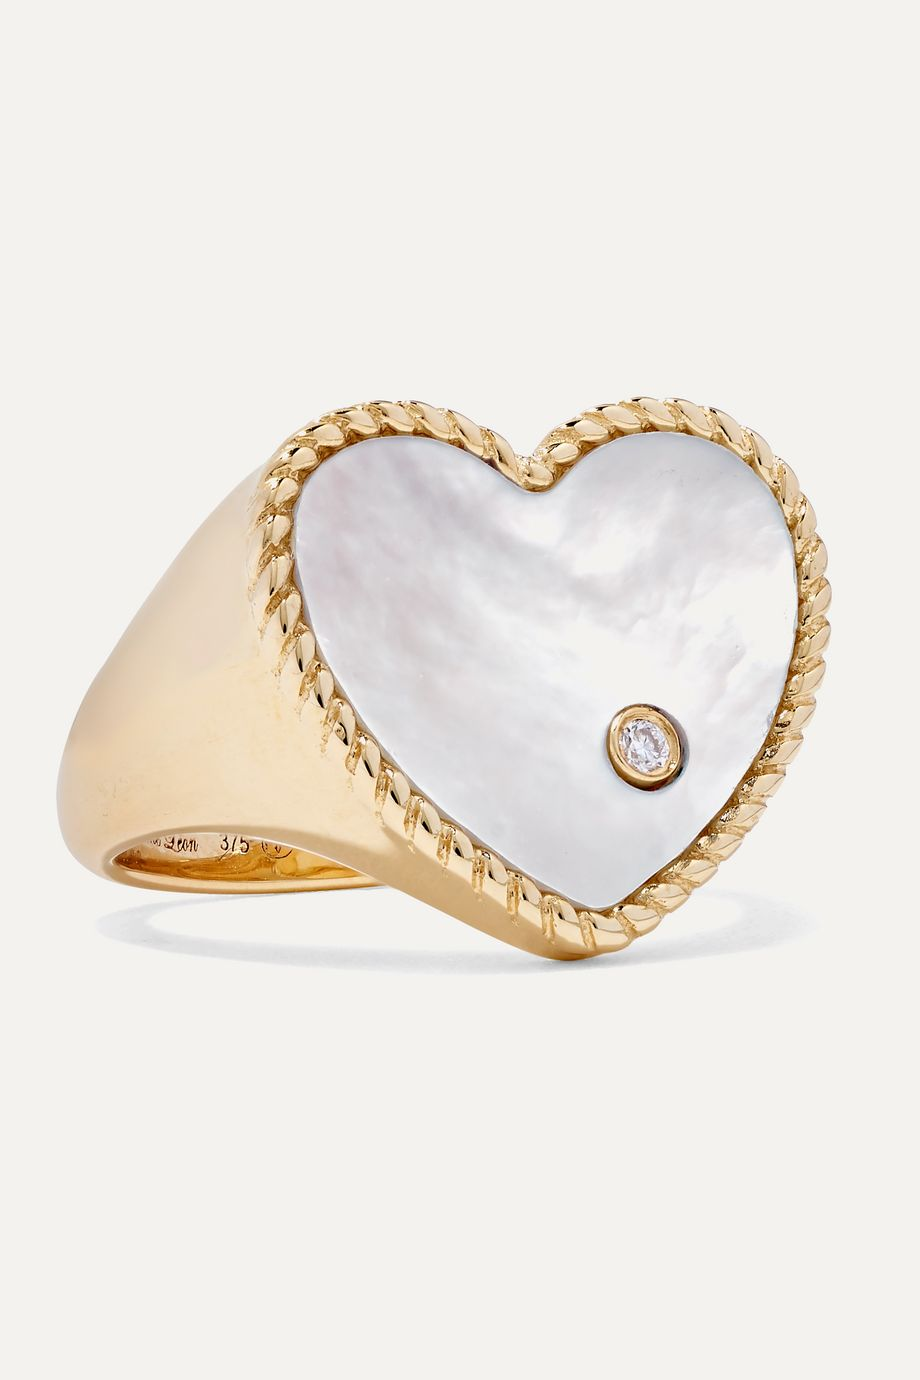 Yvonne Léon 9-karat gold, mother-of-pearl and diamond ring